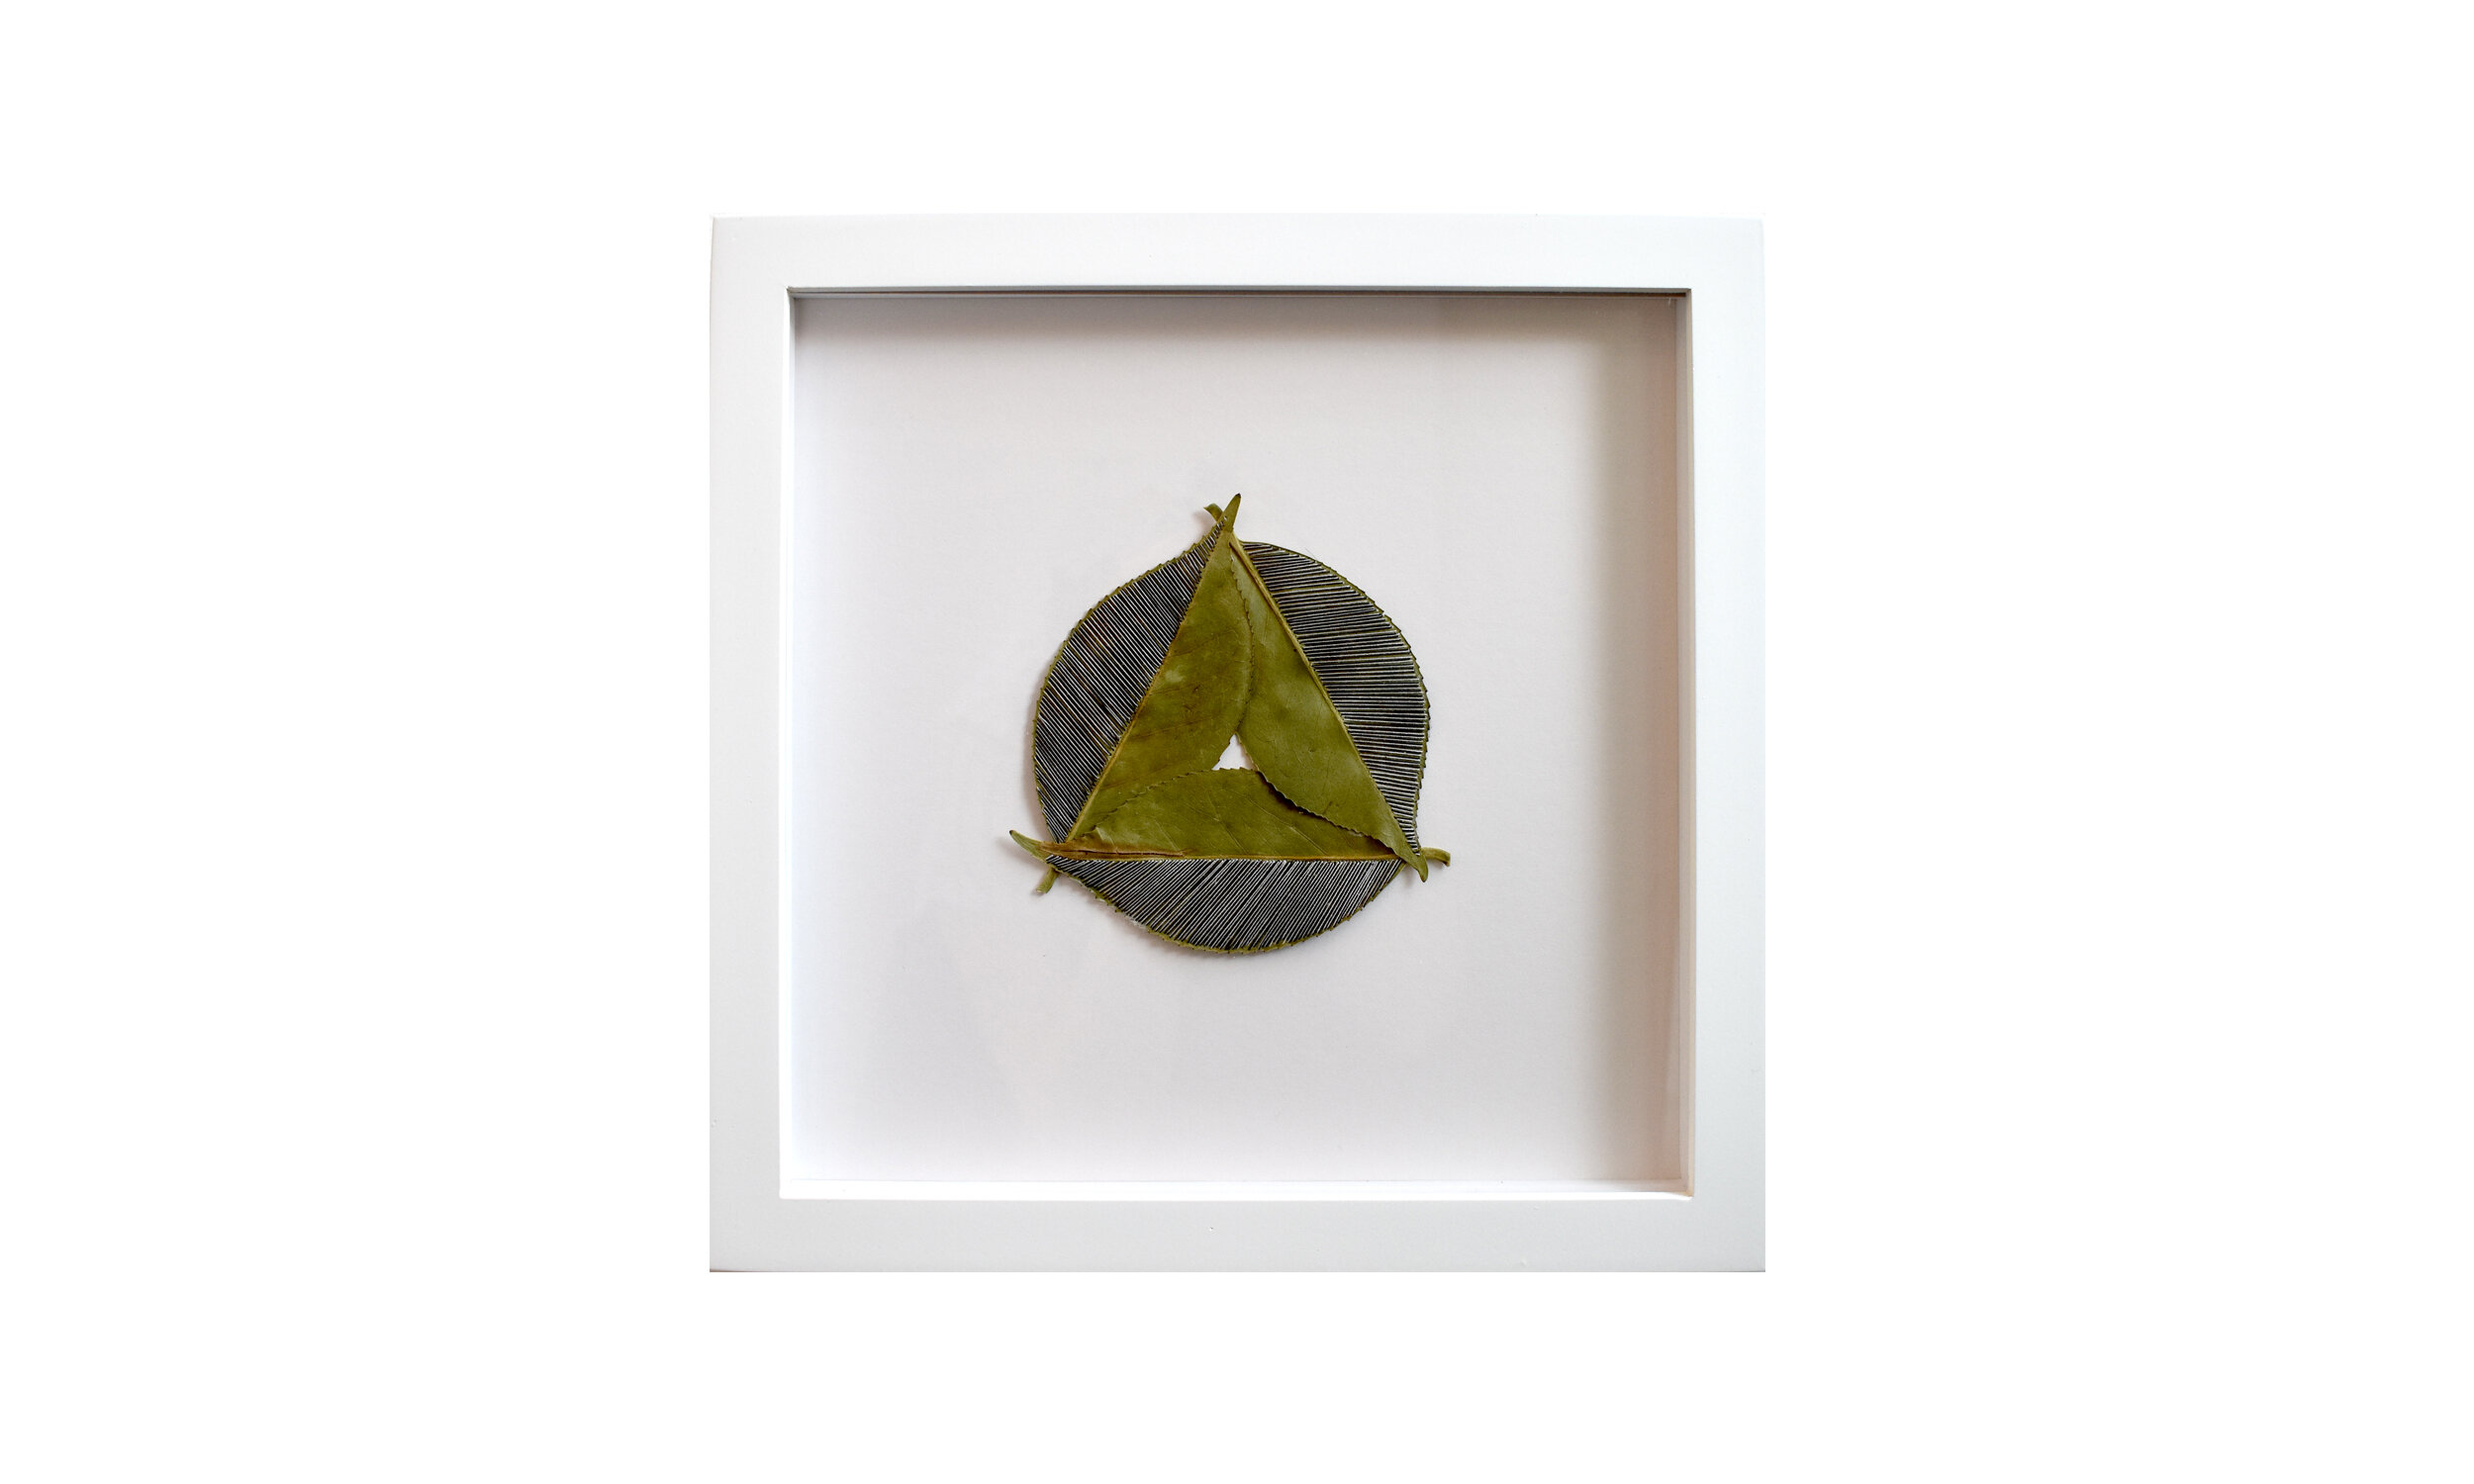 """Inherent,  stitched camellia leaves, 11.25"""" x 11.25"""", framed $ 850    Contact us for purchase"""